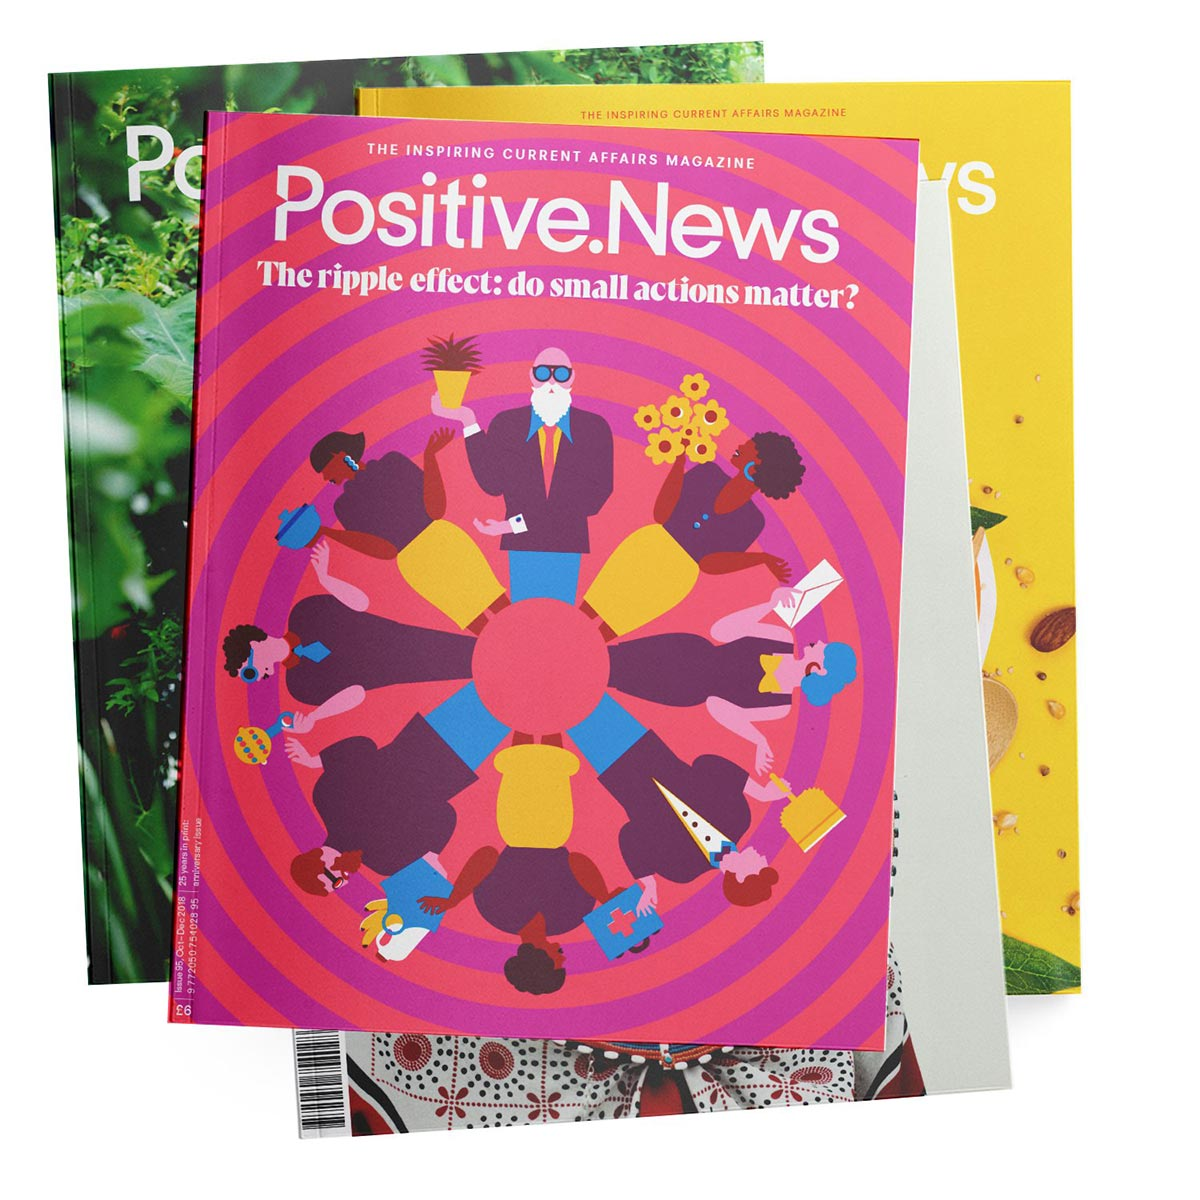 Positive News at Positive.News